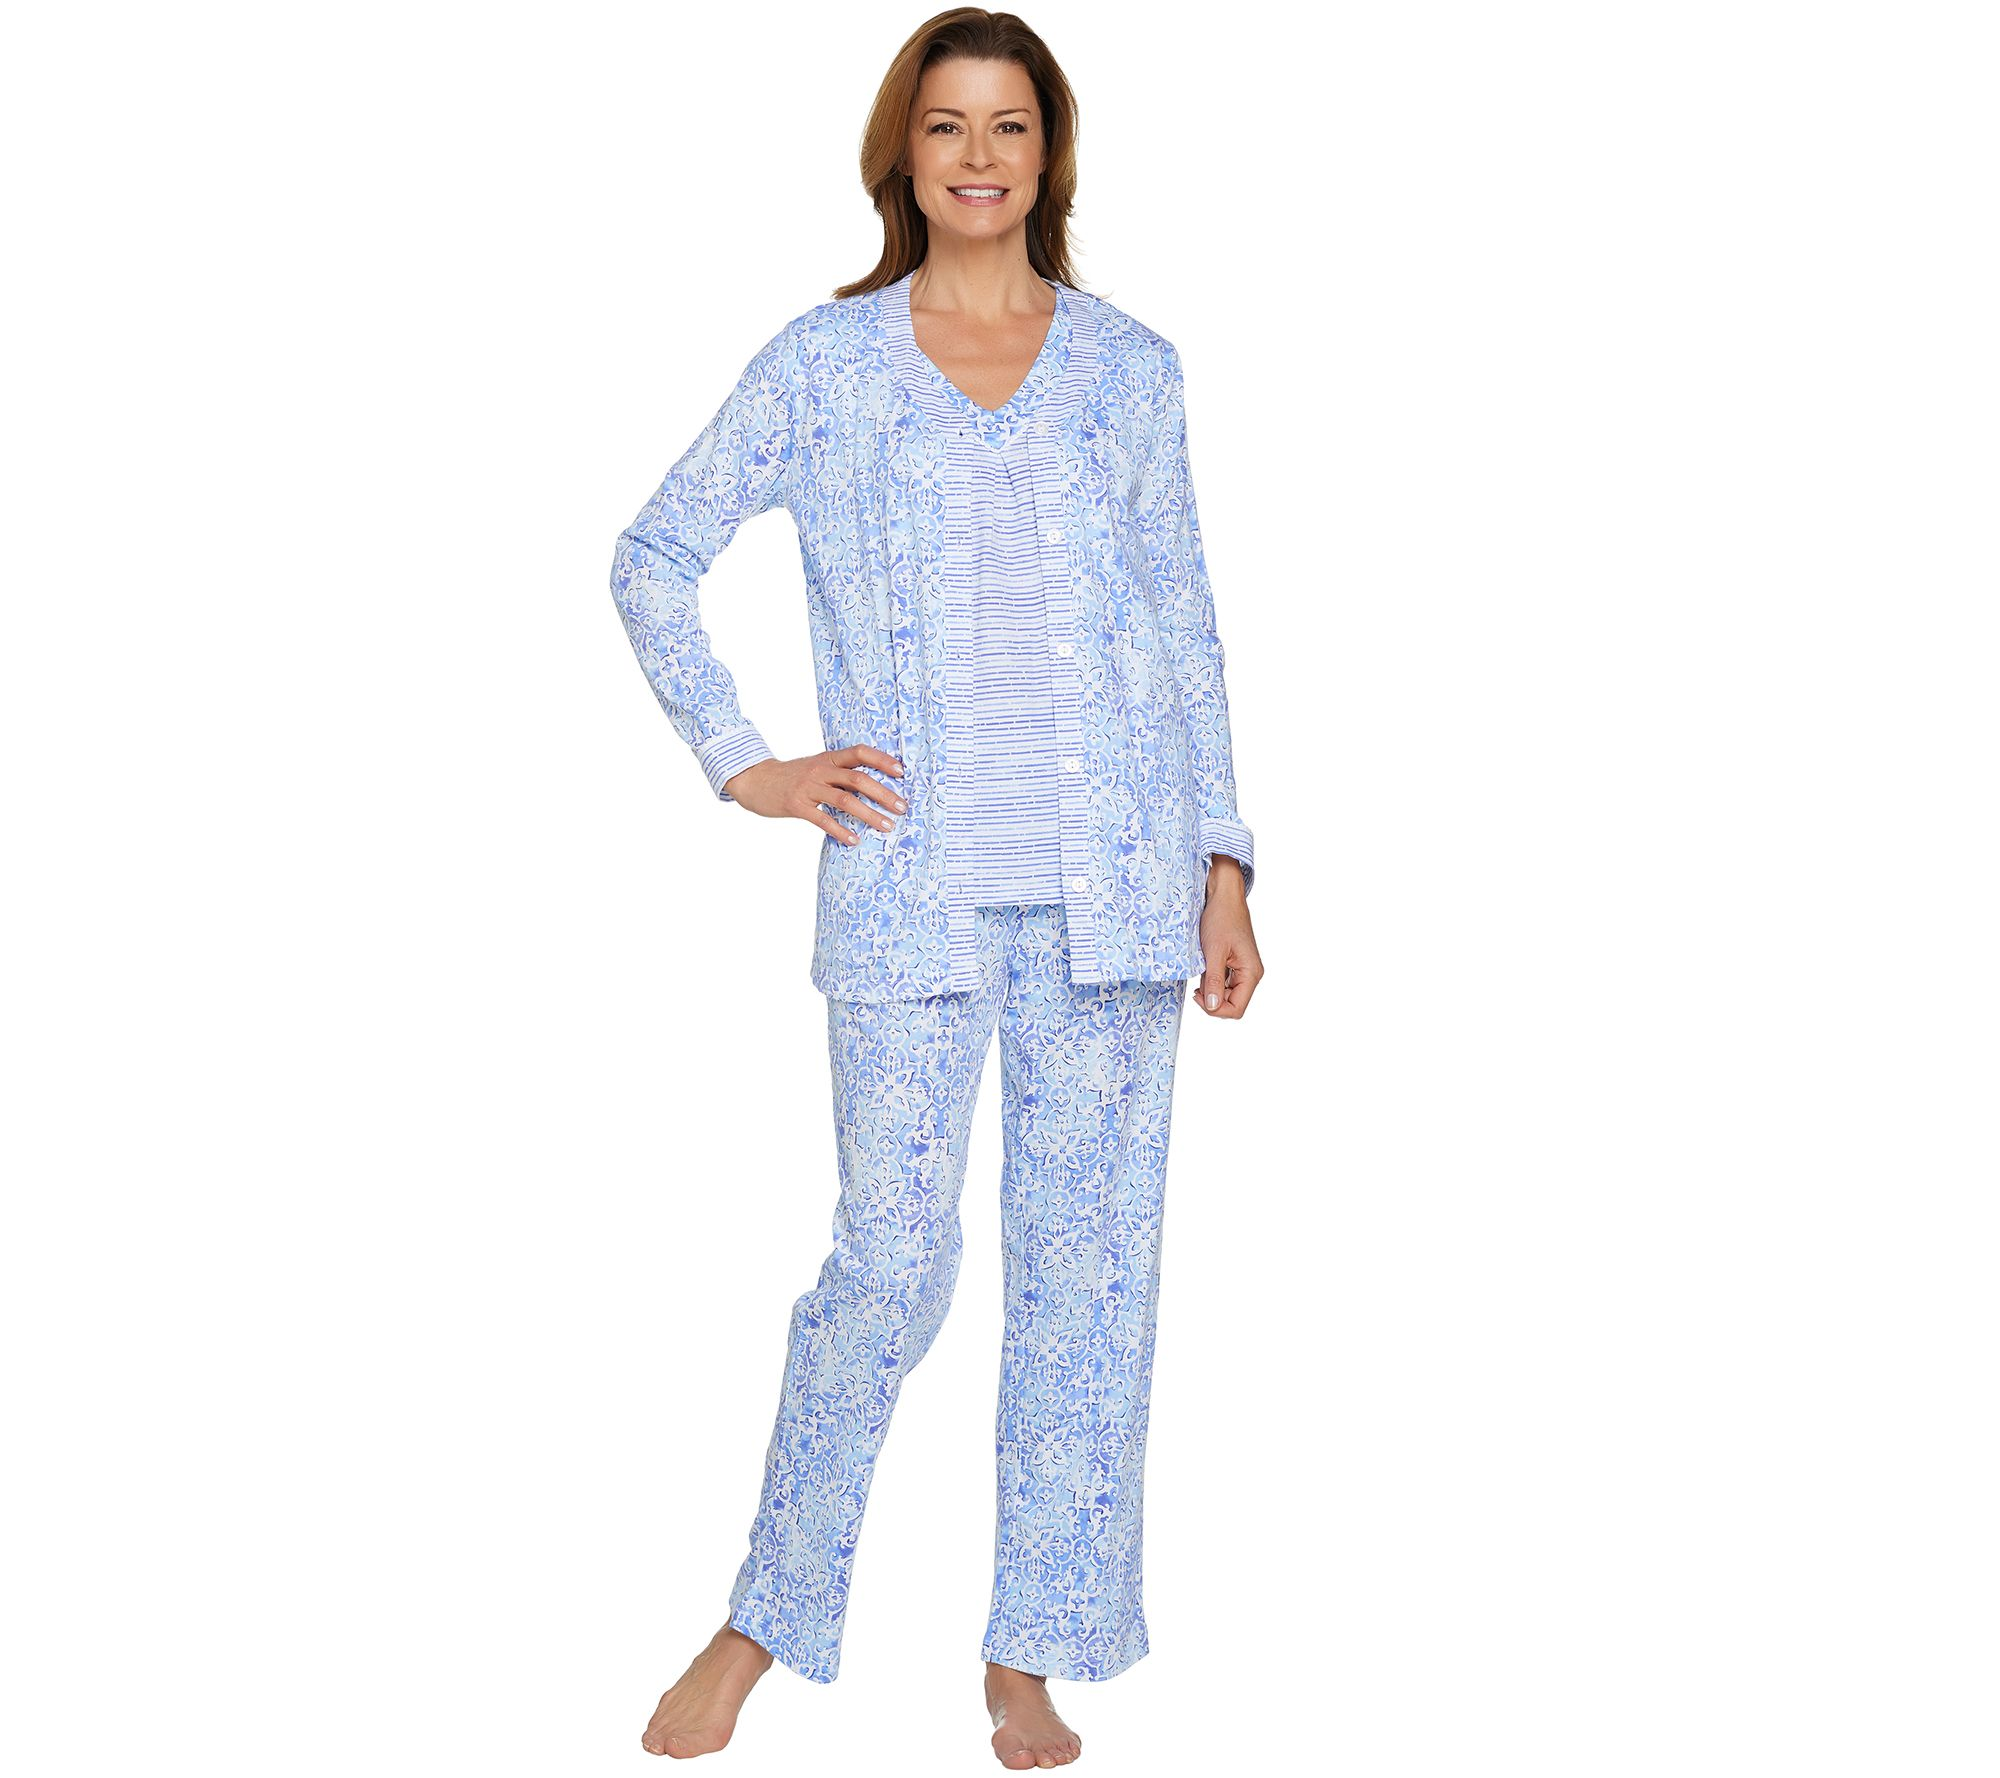 The petite lounge wear from Old Navy is made from soft, lightweight fabric. Discover a variety of soft materials which have been selected for our loungewear for amazing comfort. We have hoodies and pants made from jersey, velour and cotton blends.